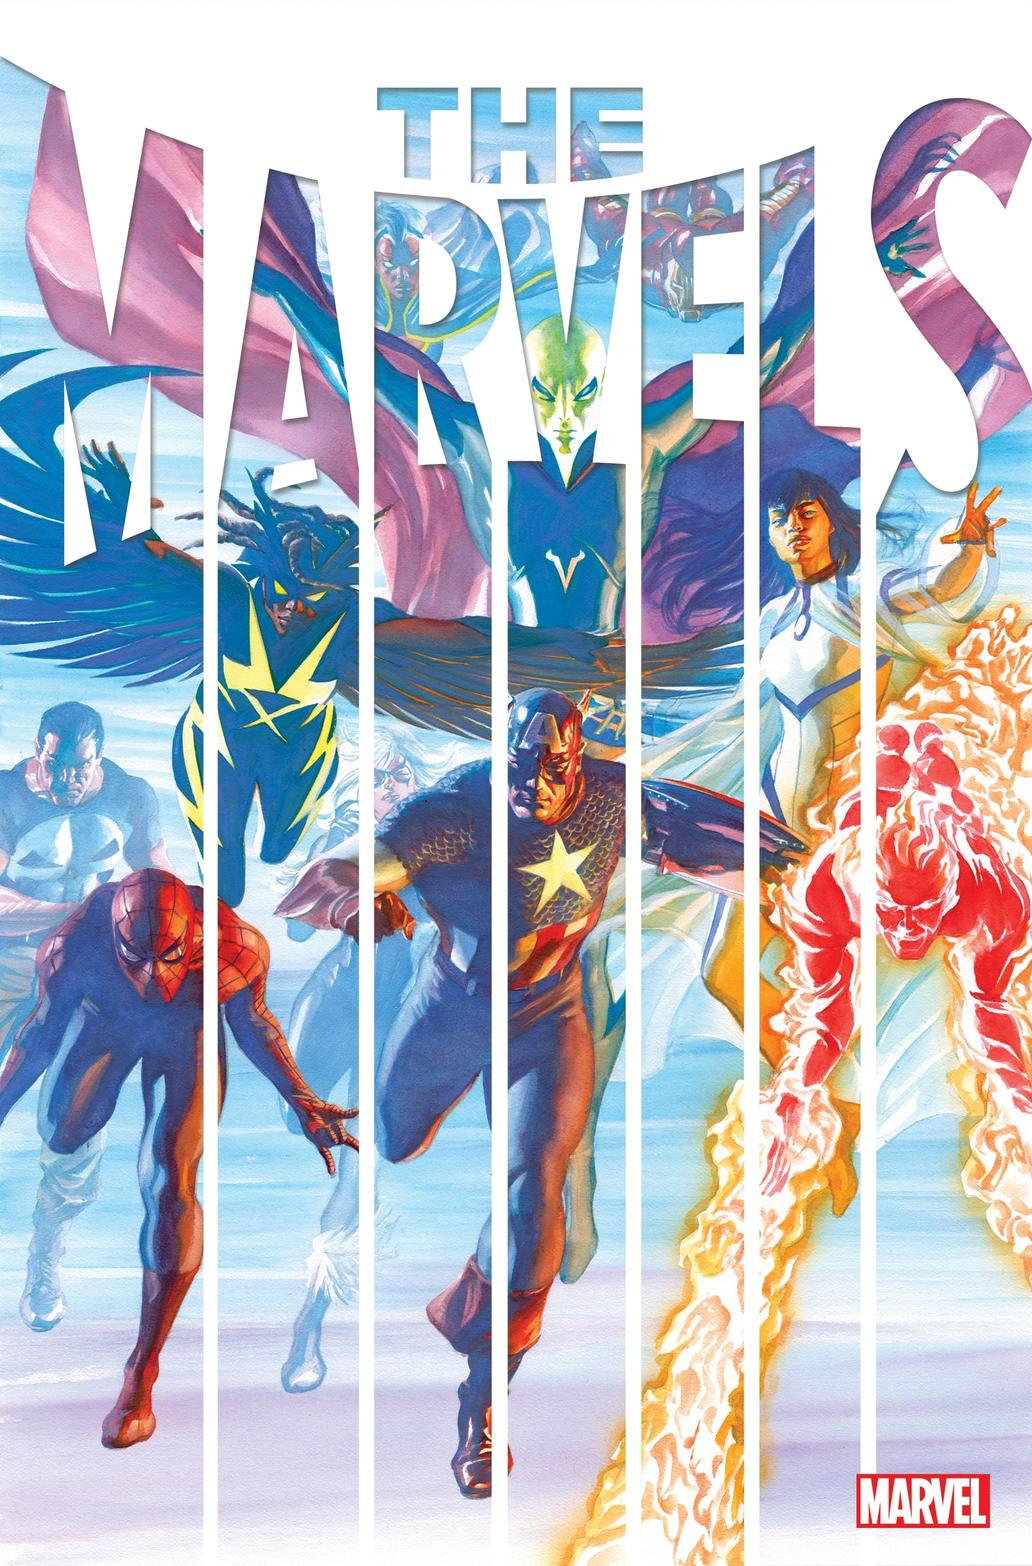 THE MARVELS #1 cover by Alex Ross